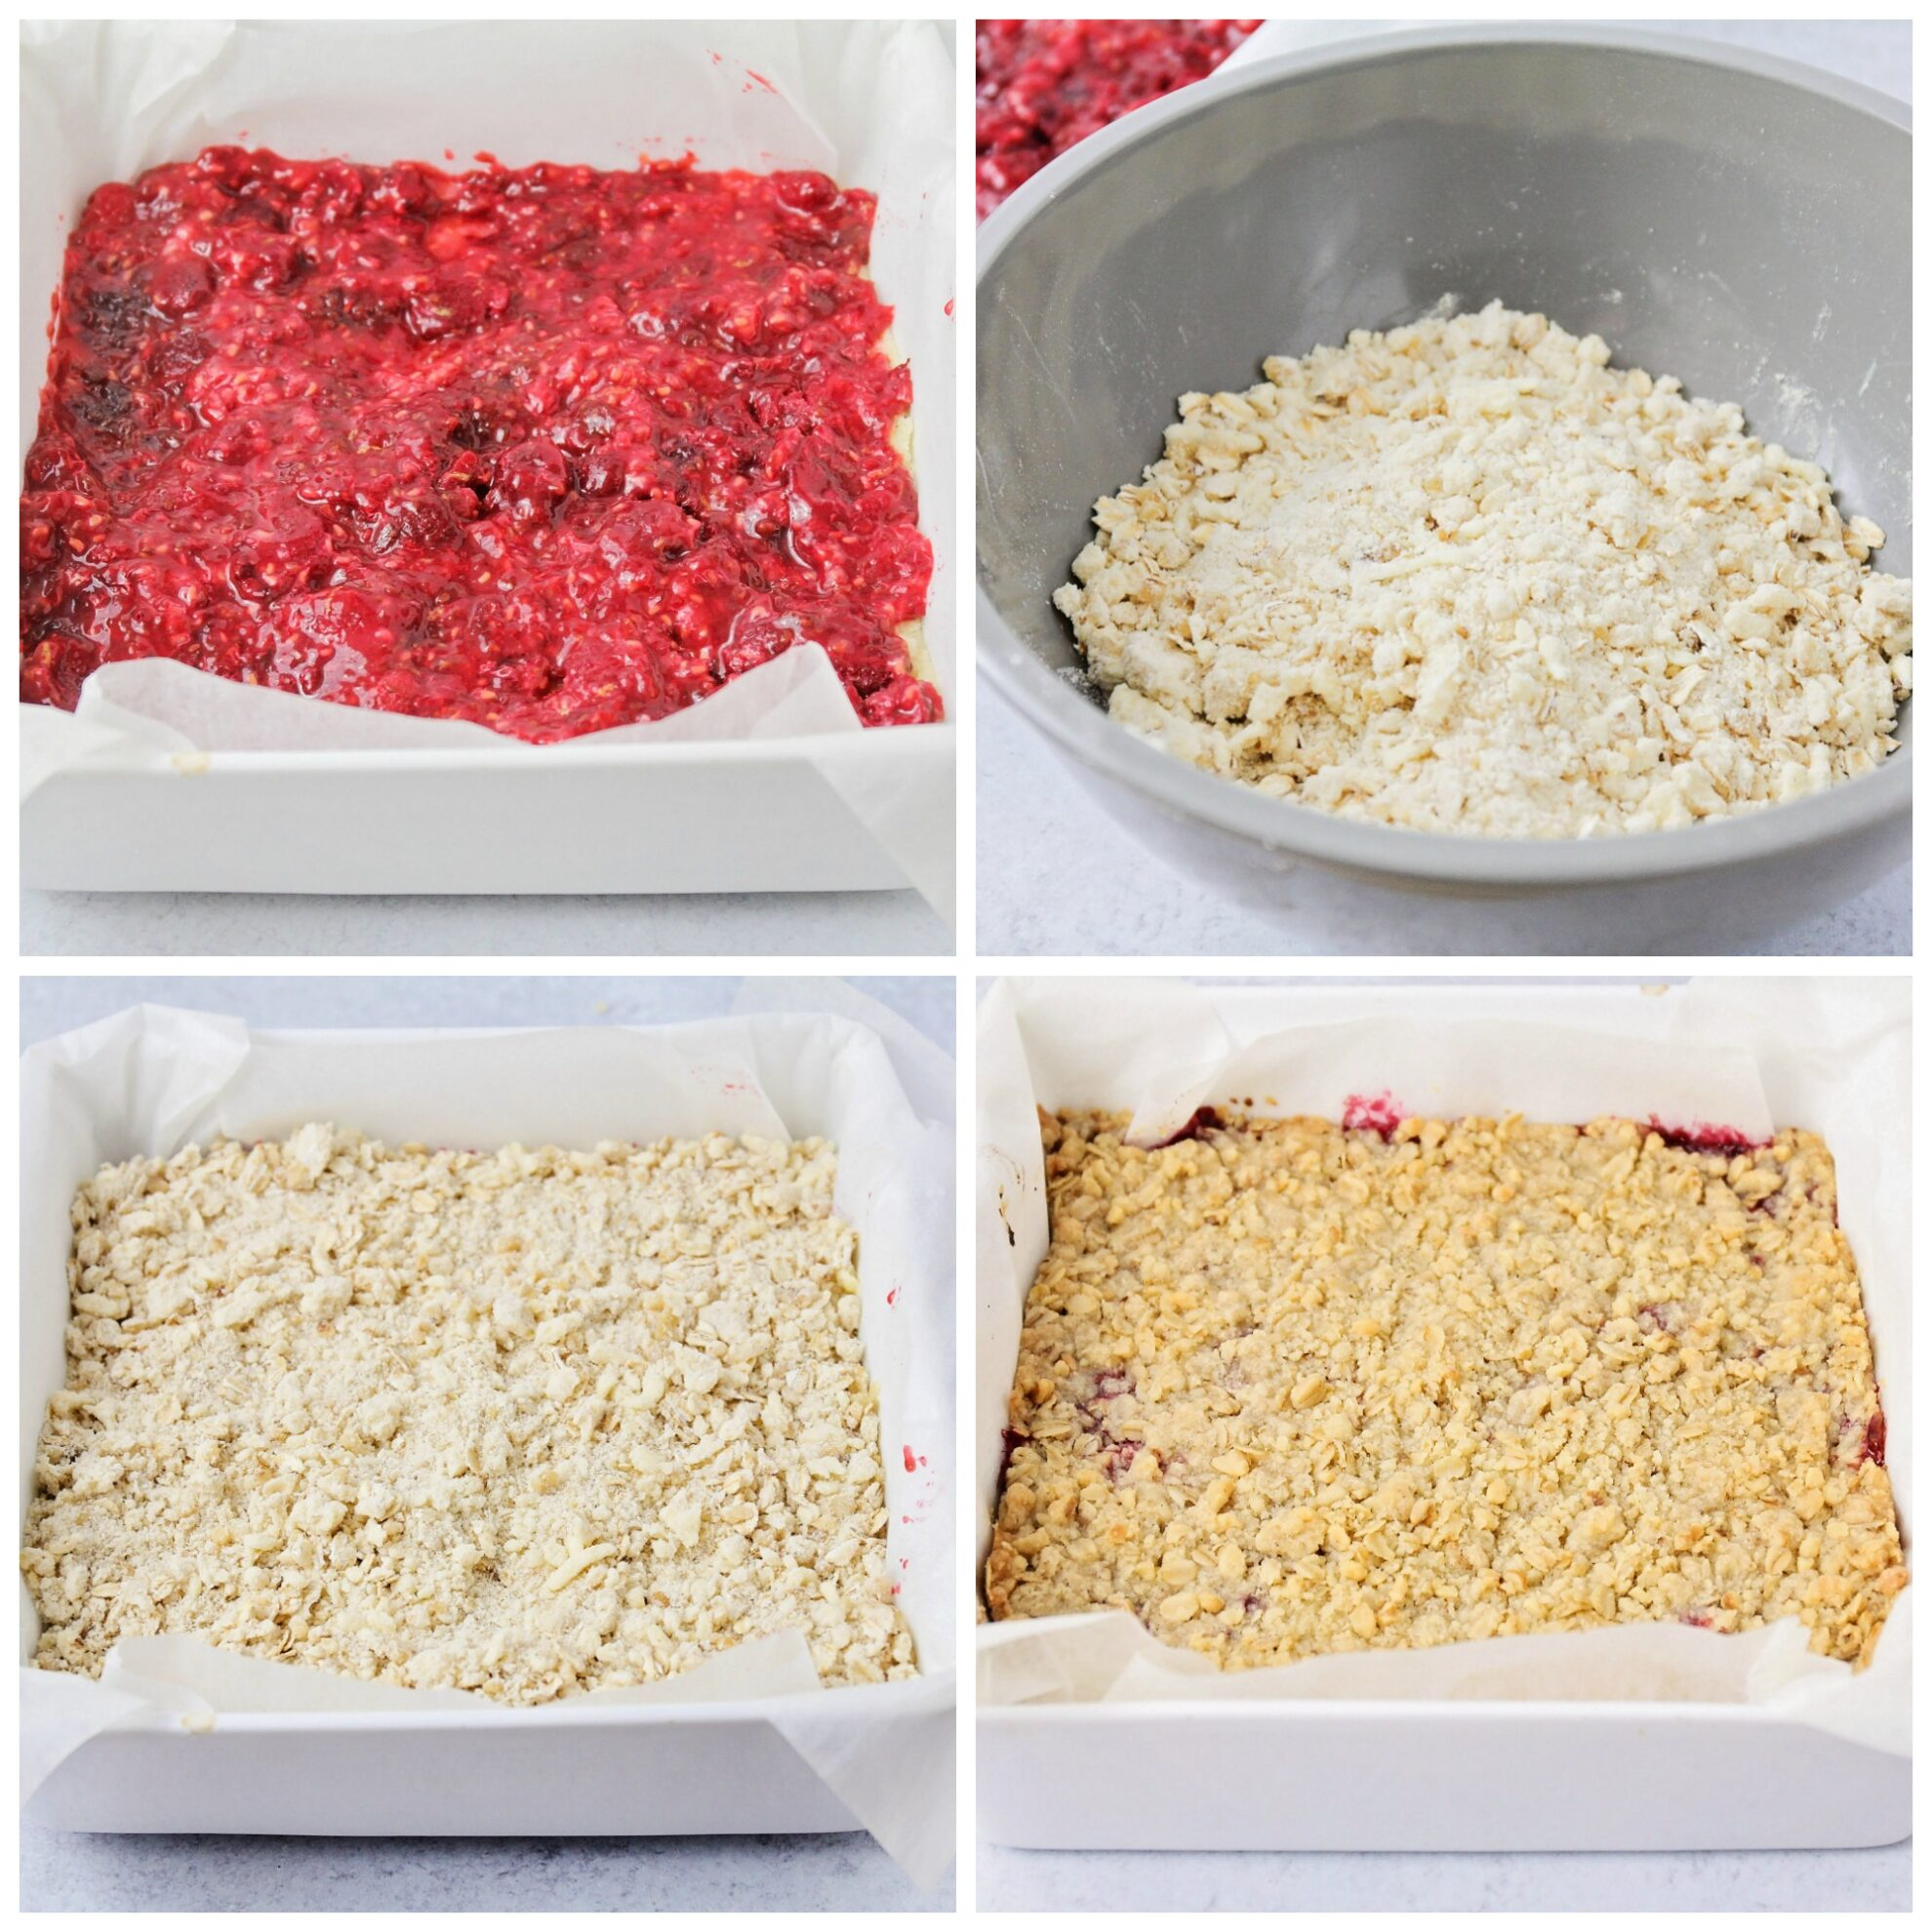 Step by step pictures for how to make raspberry bars